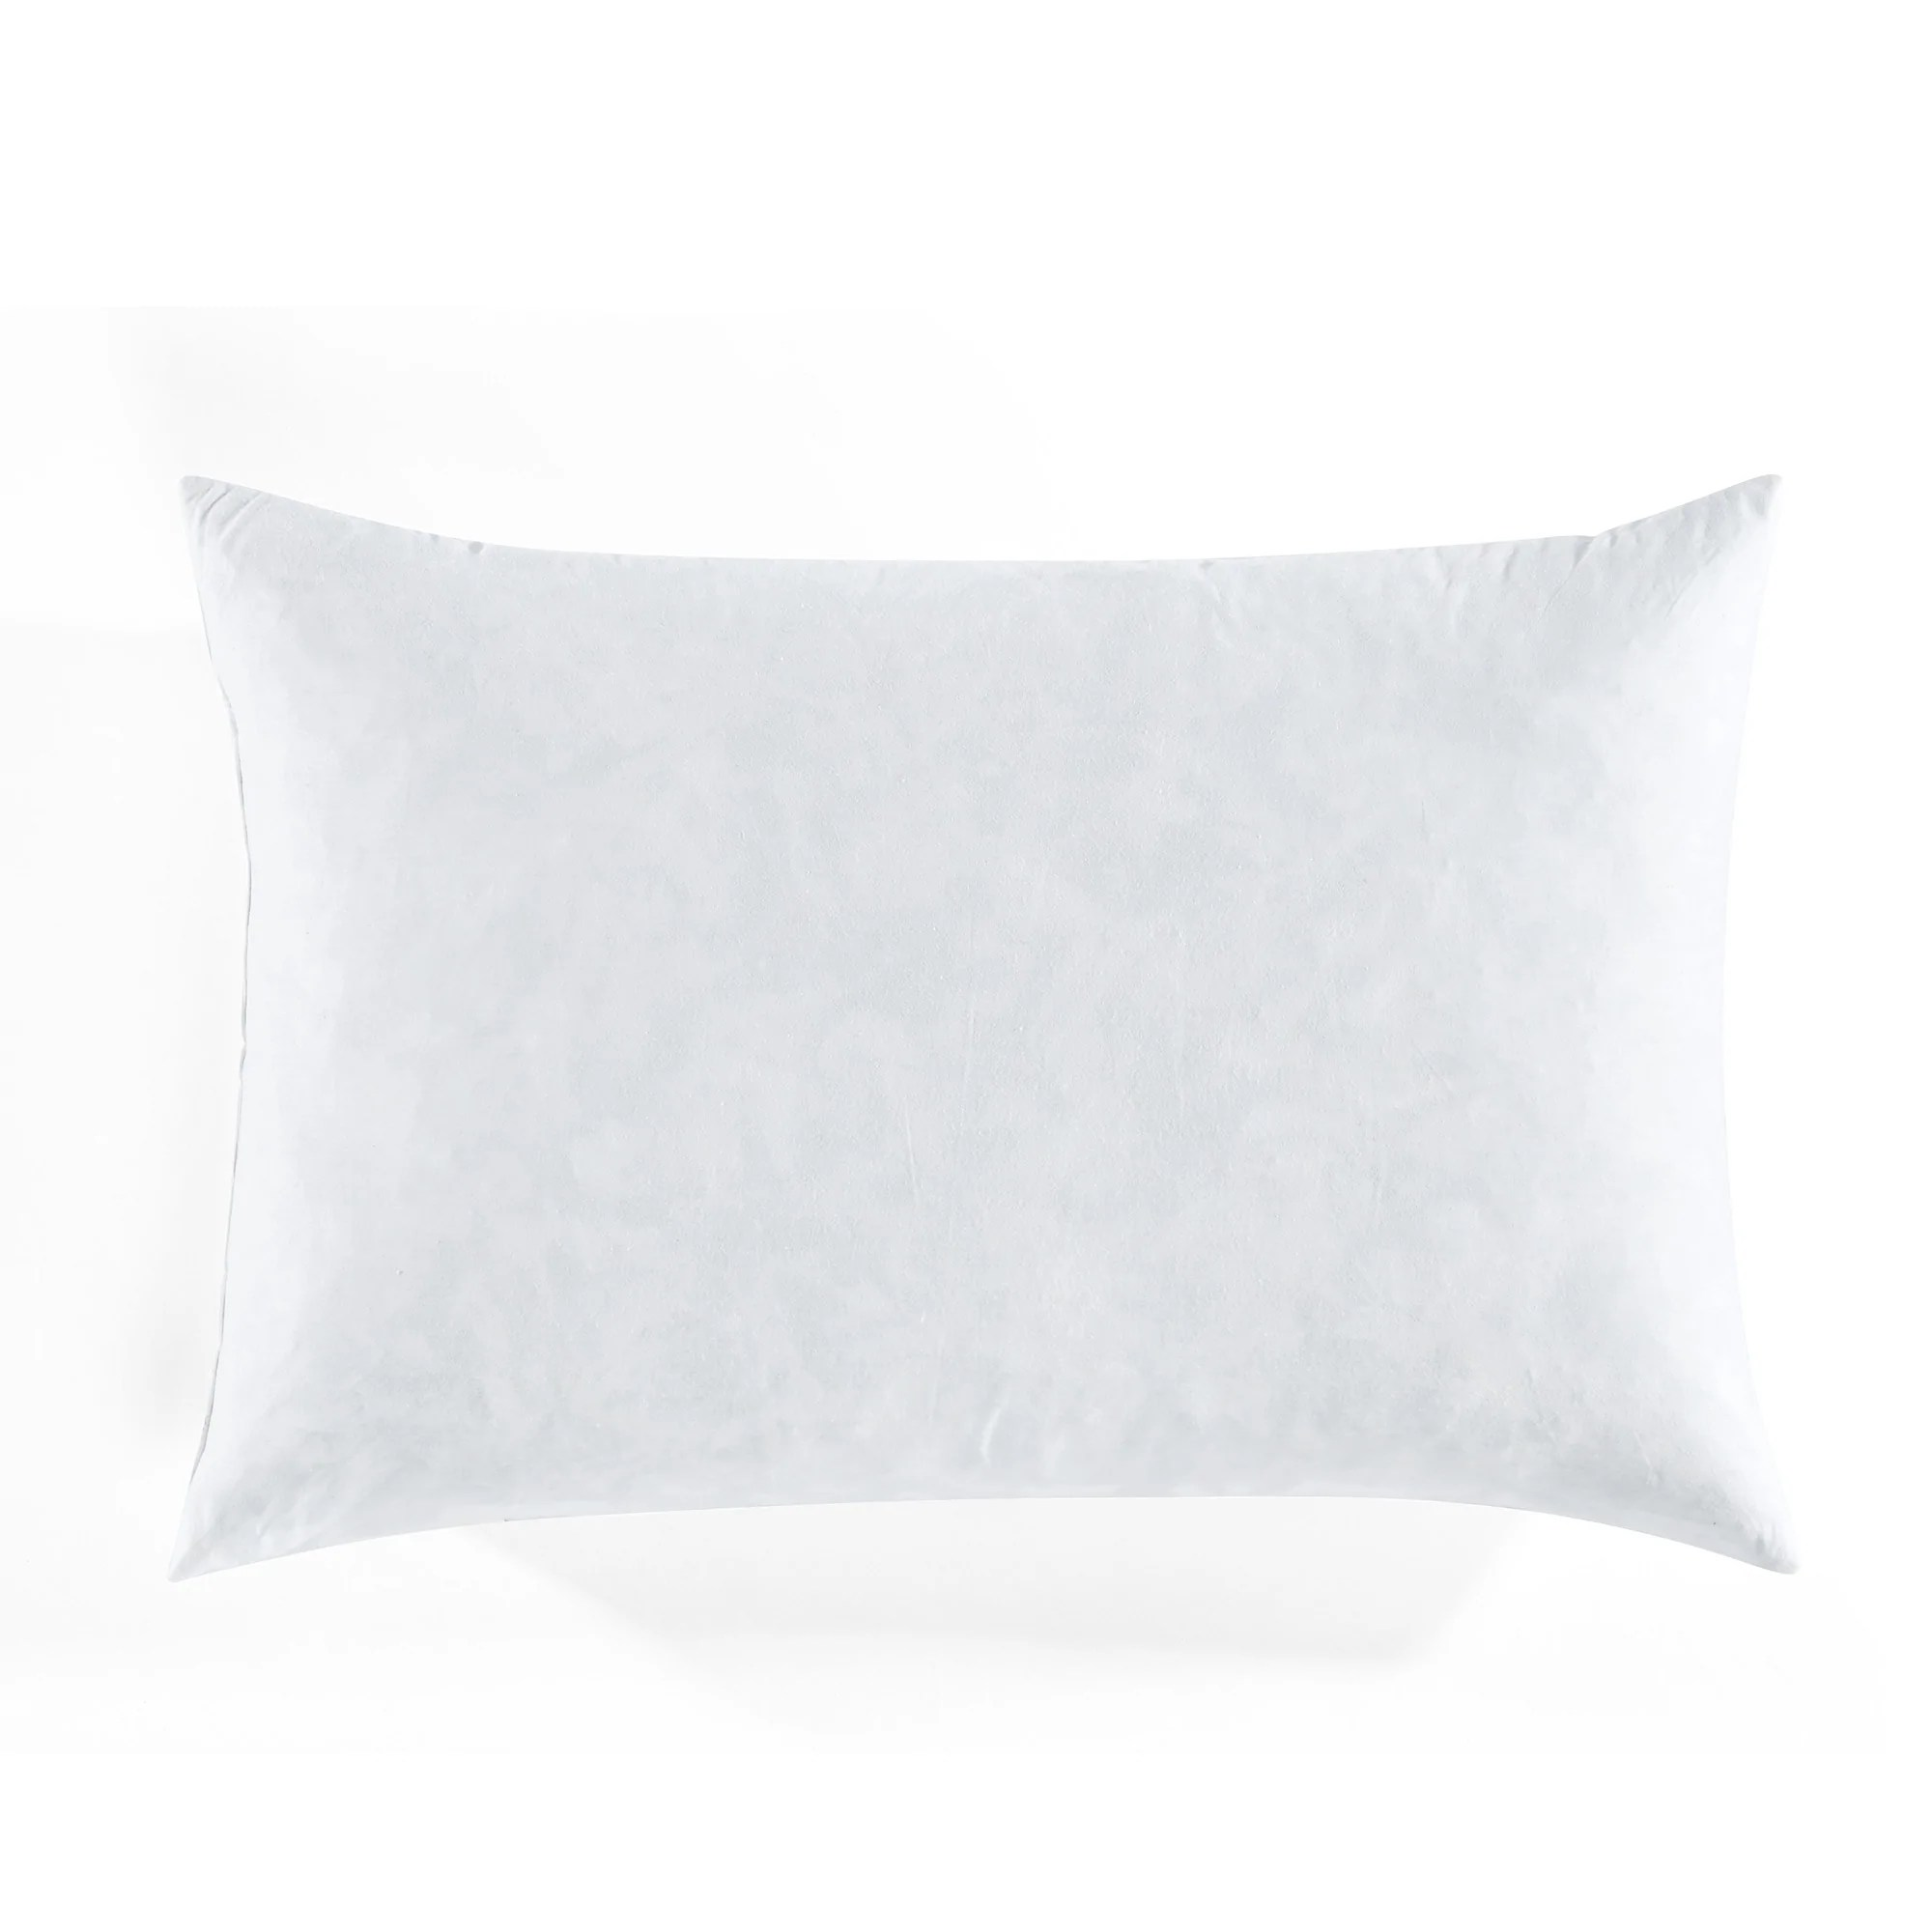 feather down in cotton cover decorative pillow insert 14 x 21 white